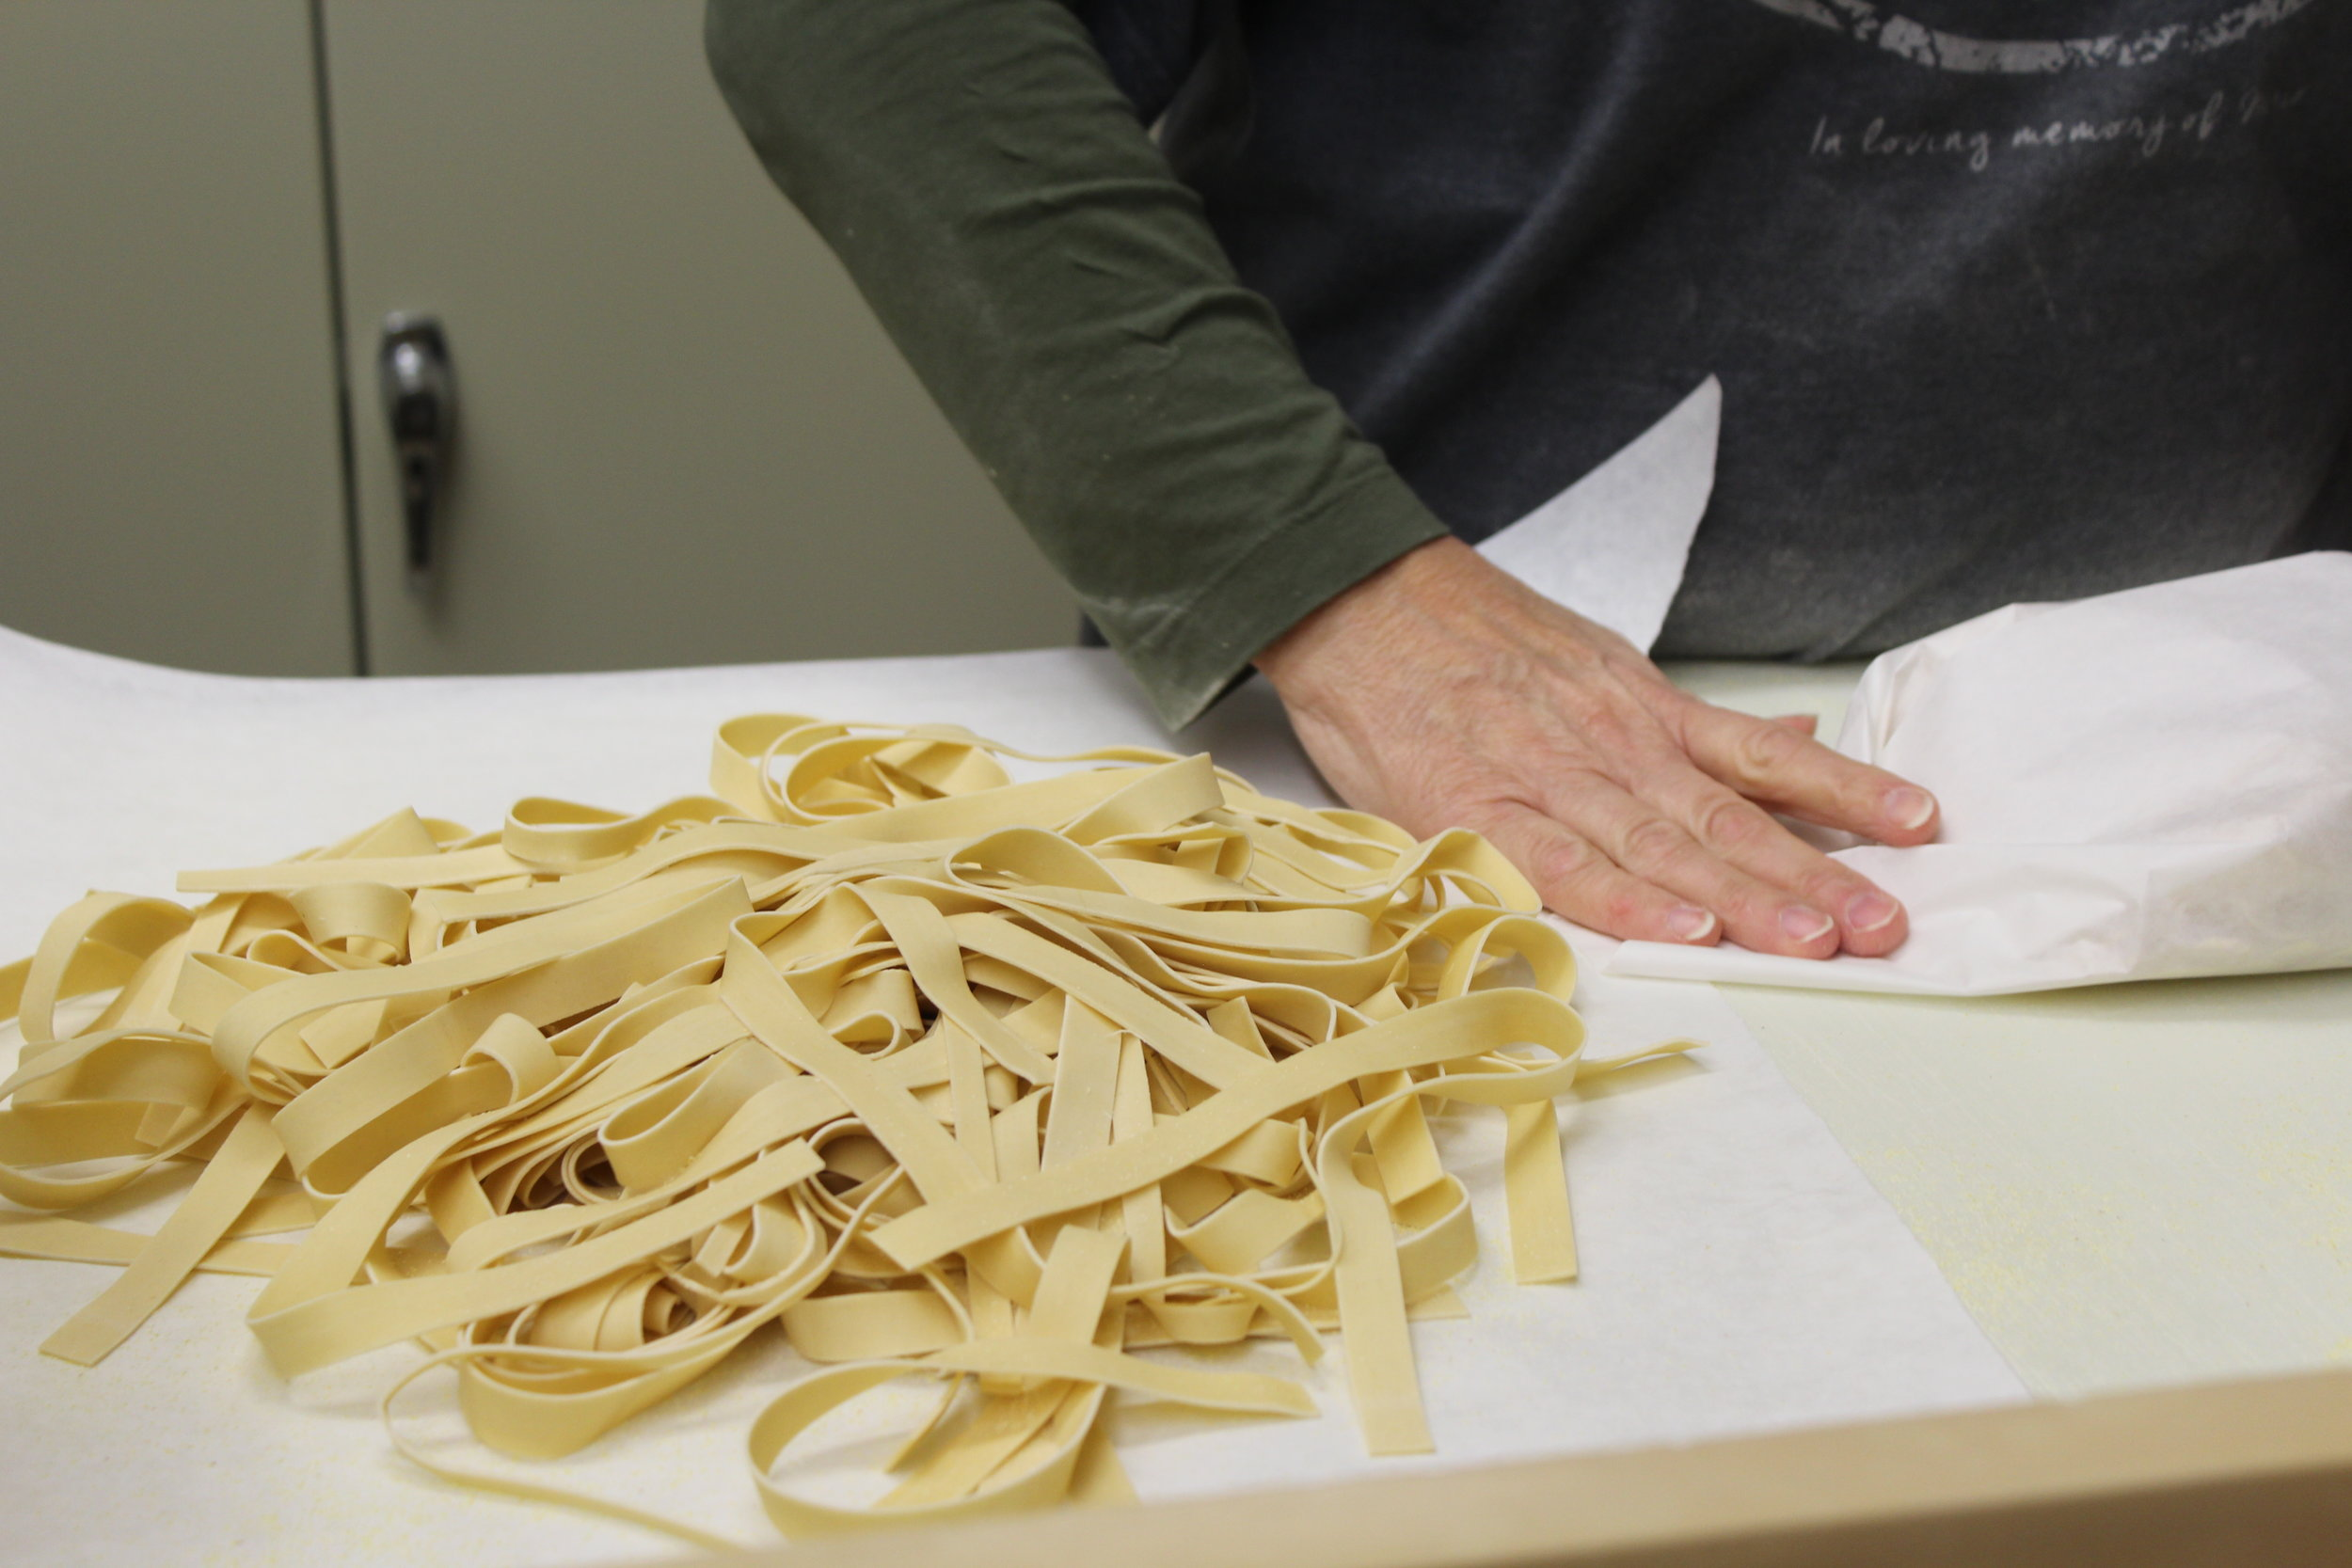 Egg noodles are cut fresh to order at Borgatti's